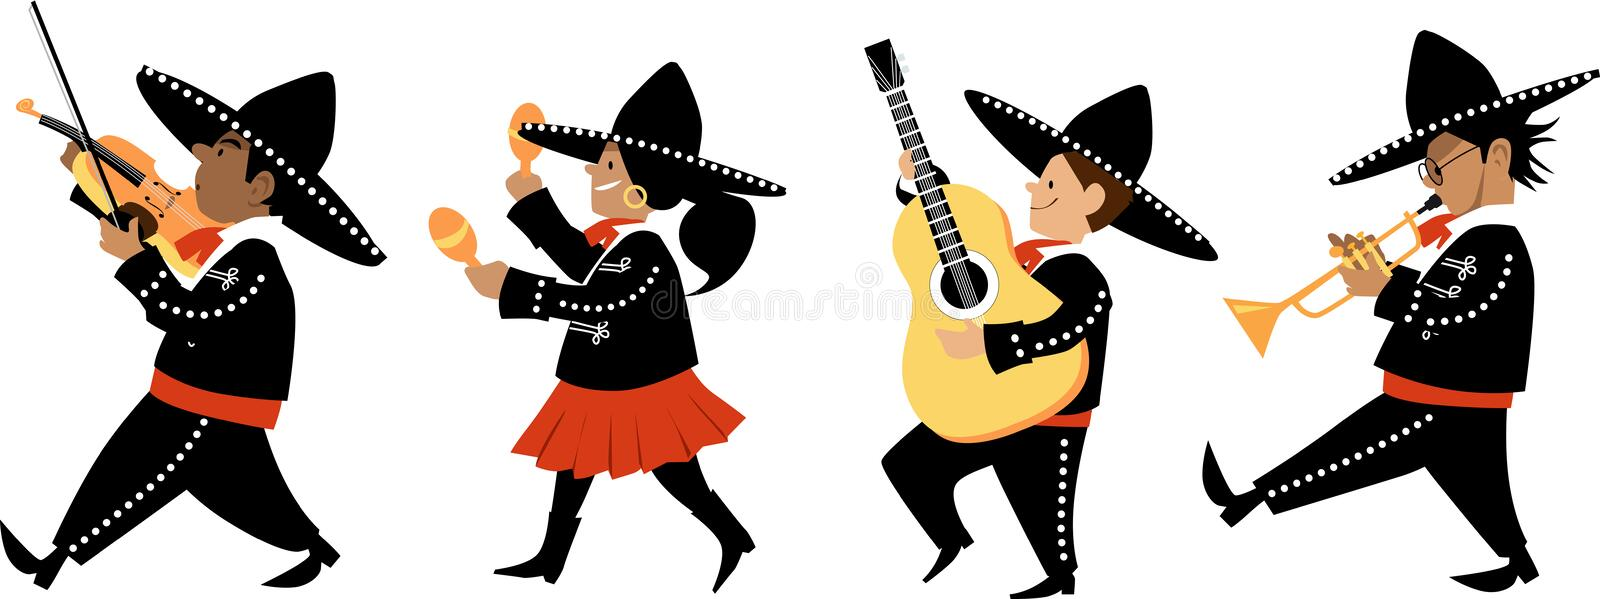 Mariachi band. Cute kids in mariachi outfits playing traditional instruments, EPS 8 vector illustration vector illustration